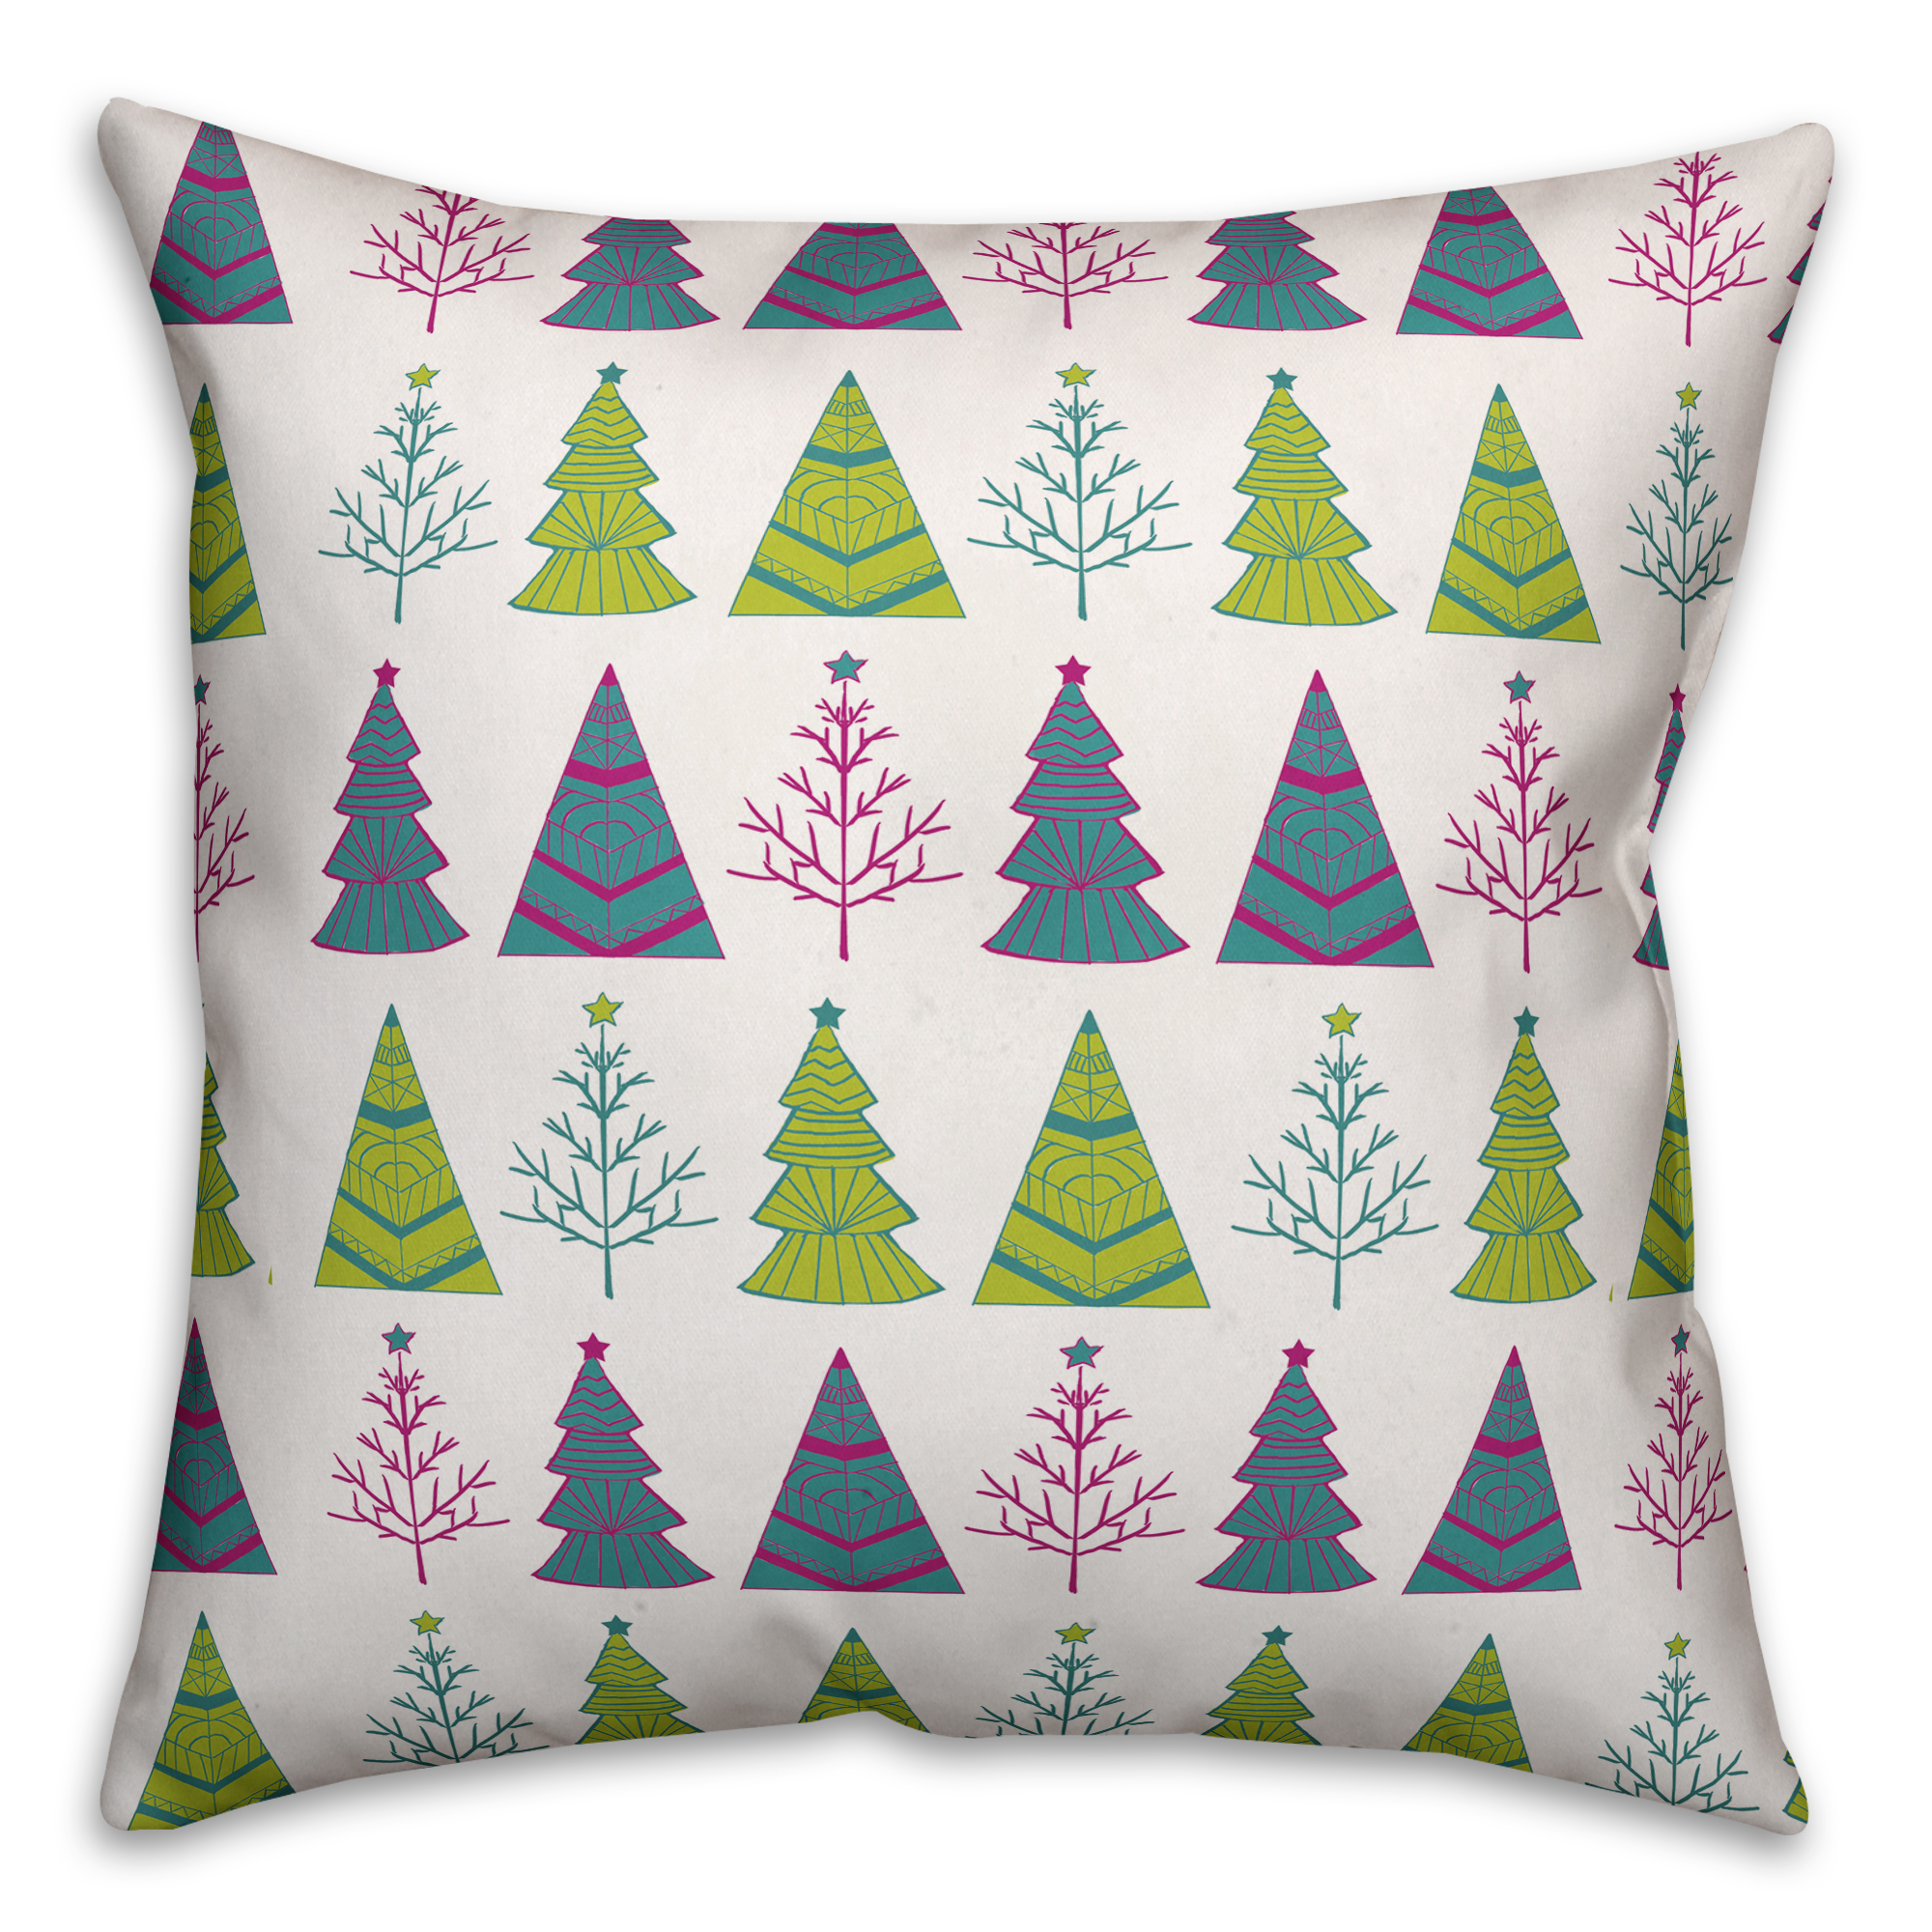 Christmas Tree Pattern 20x20 Spun Poly Pillow Cover